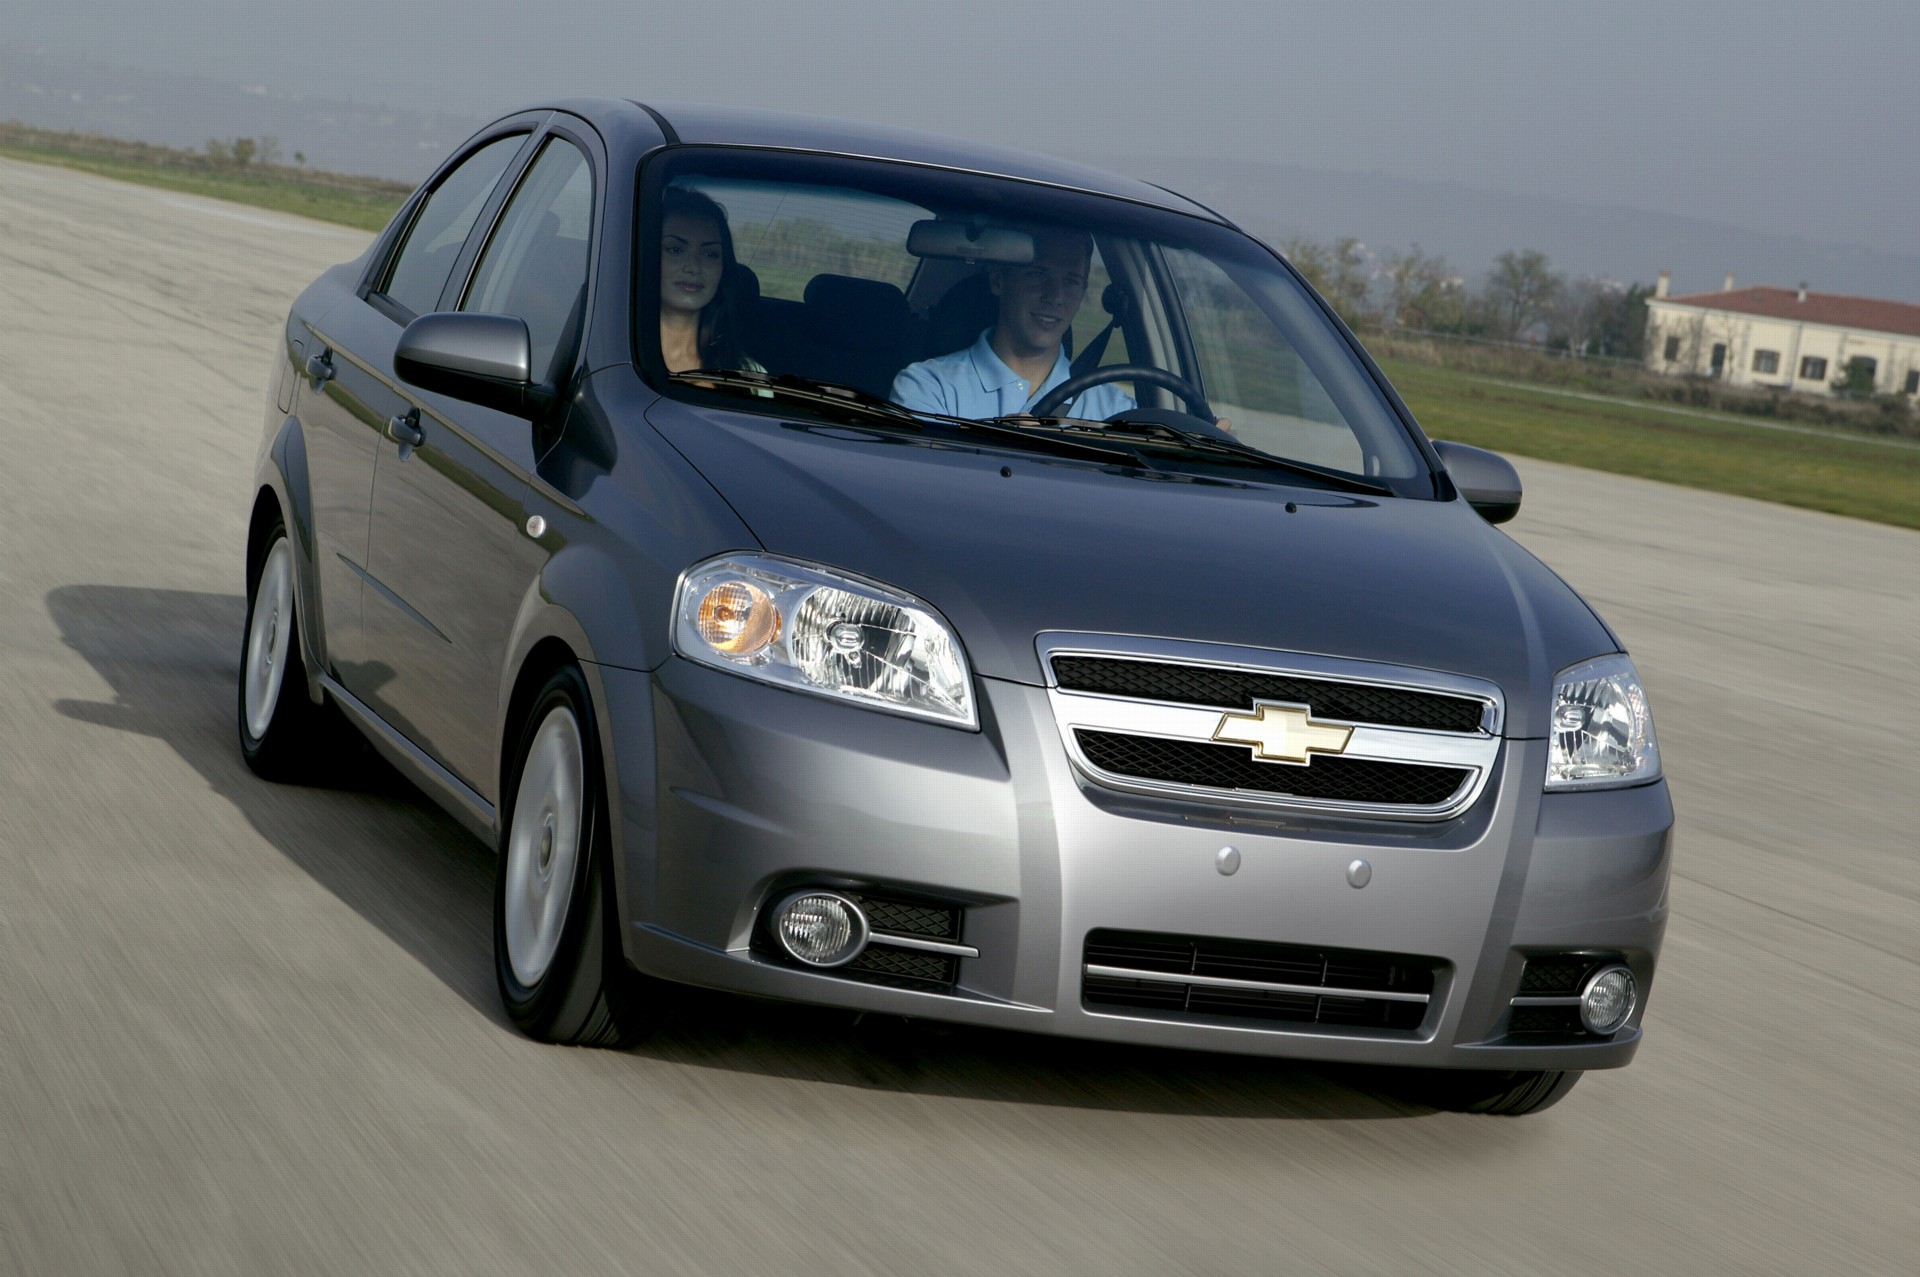 2007 chevrolet aveo images photo chevy aveo manu 07. Black Bedroom Furniture Sets. Home Design Ideas